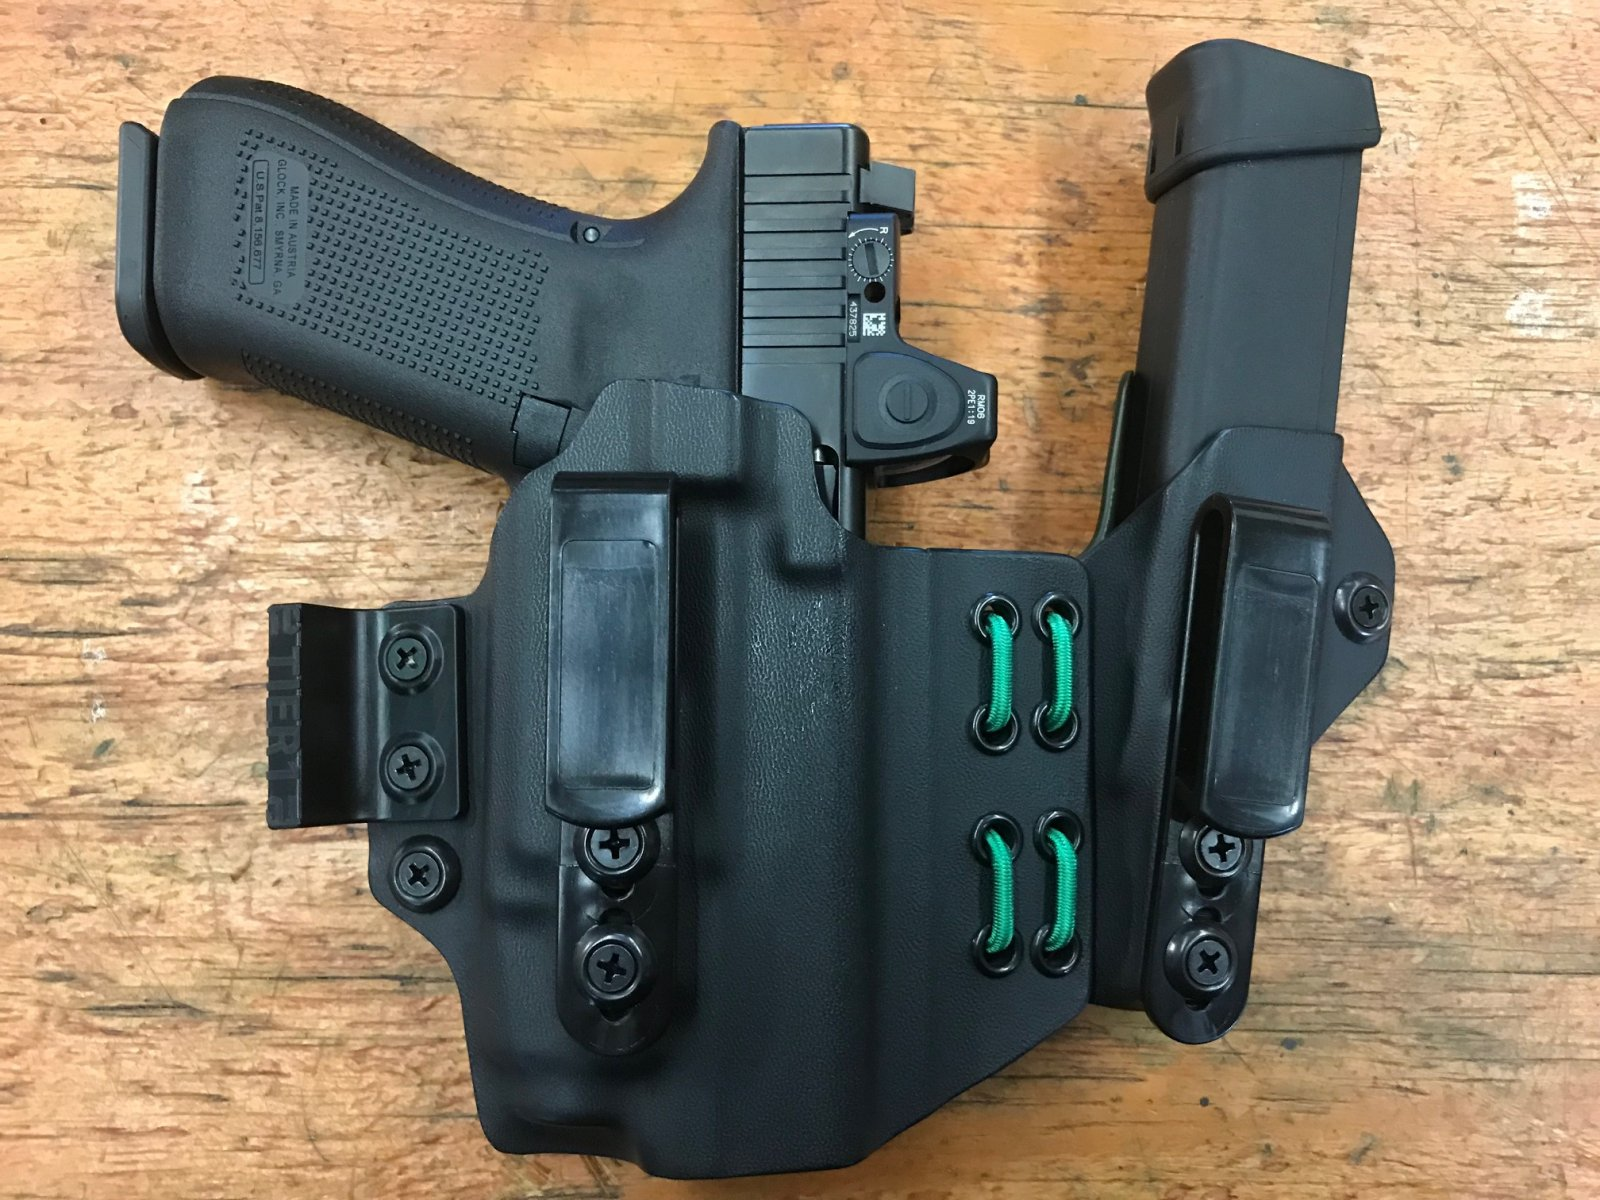 Appendix Carry G45 | The Leading Glock Forum and Community